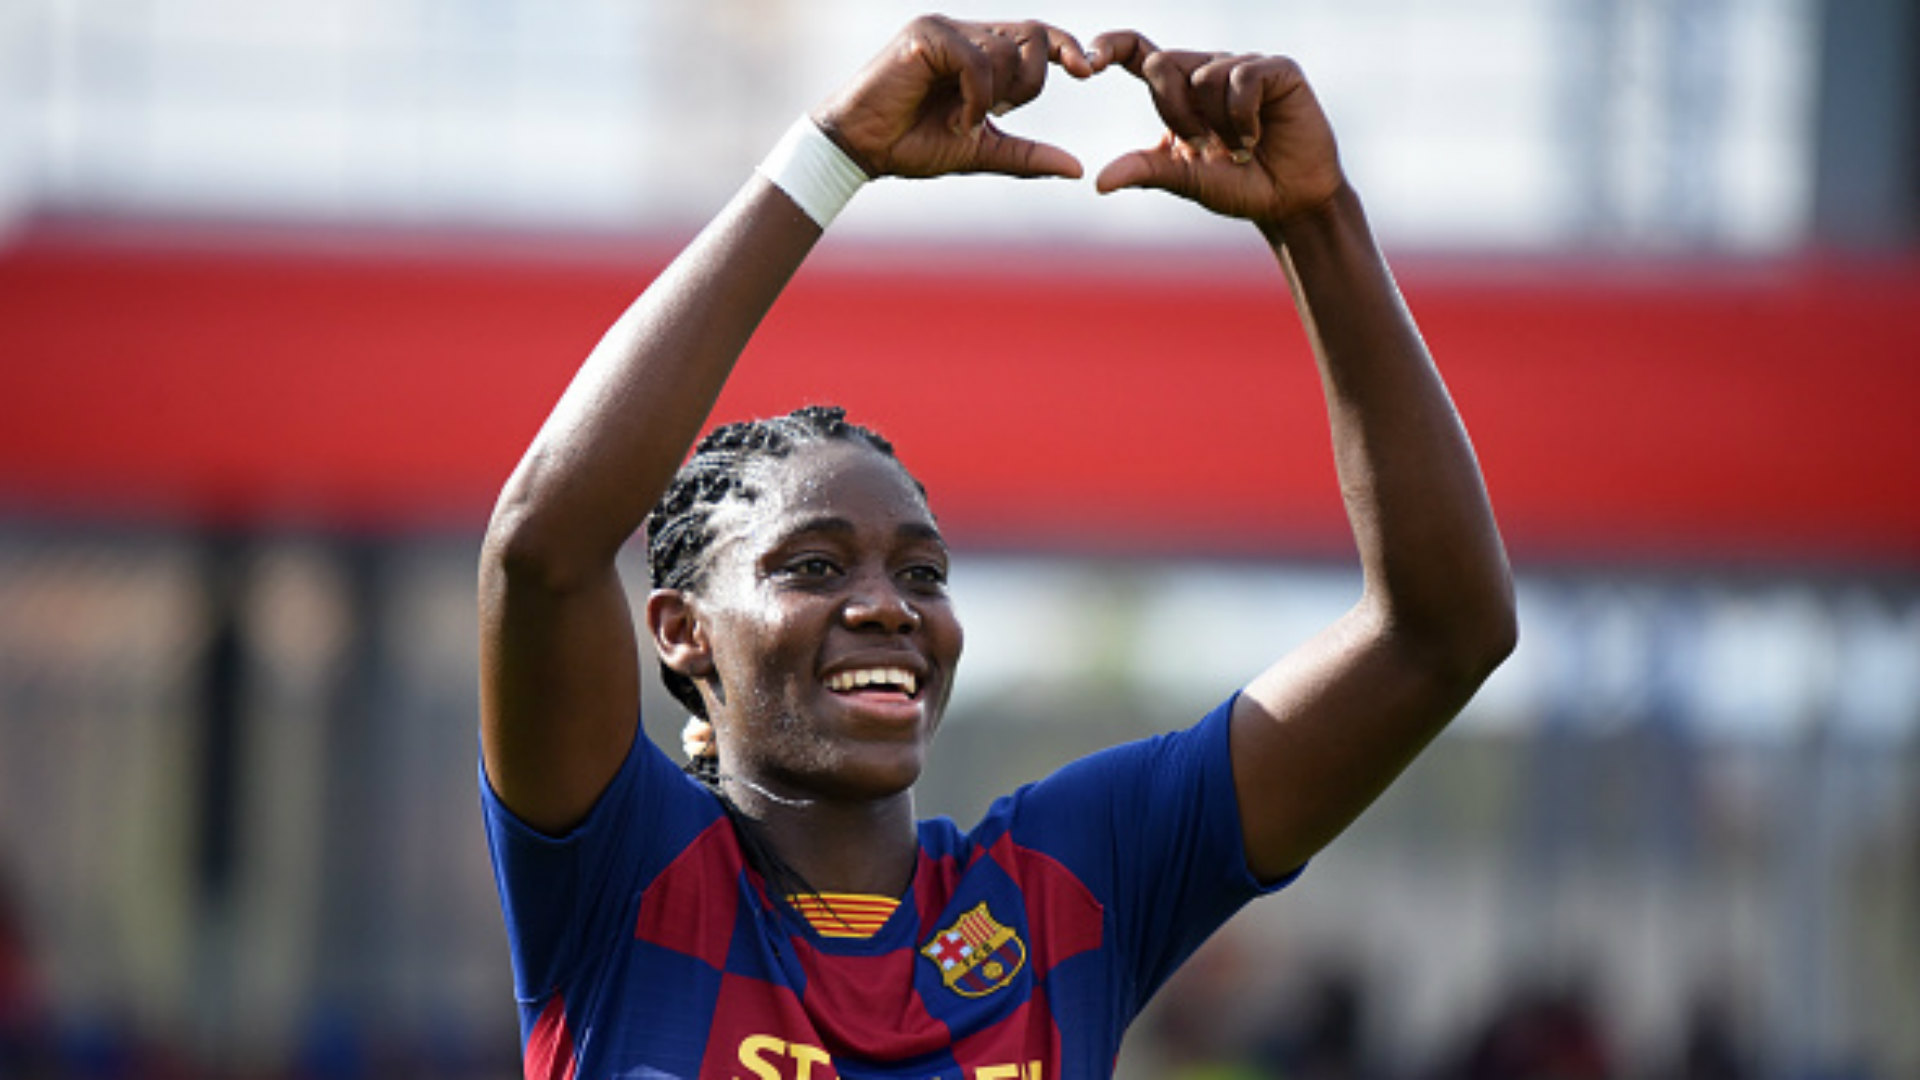 'She is still very young' - Oshoala deepens Enganamouit's retirement confusion